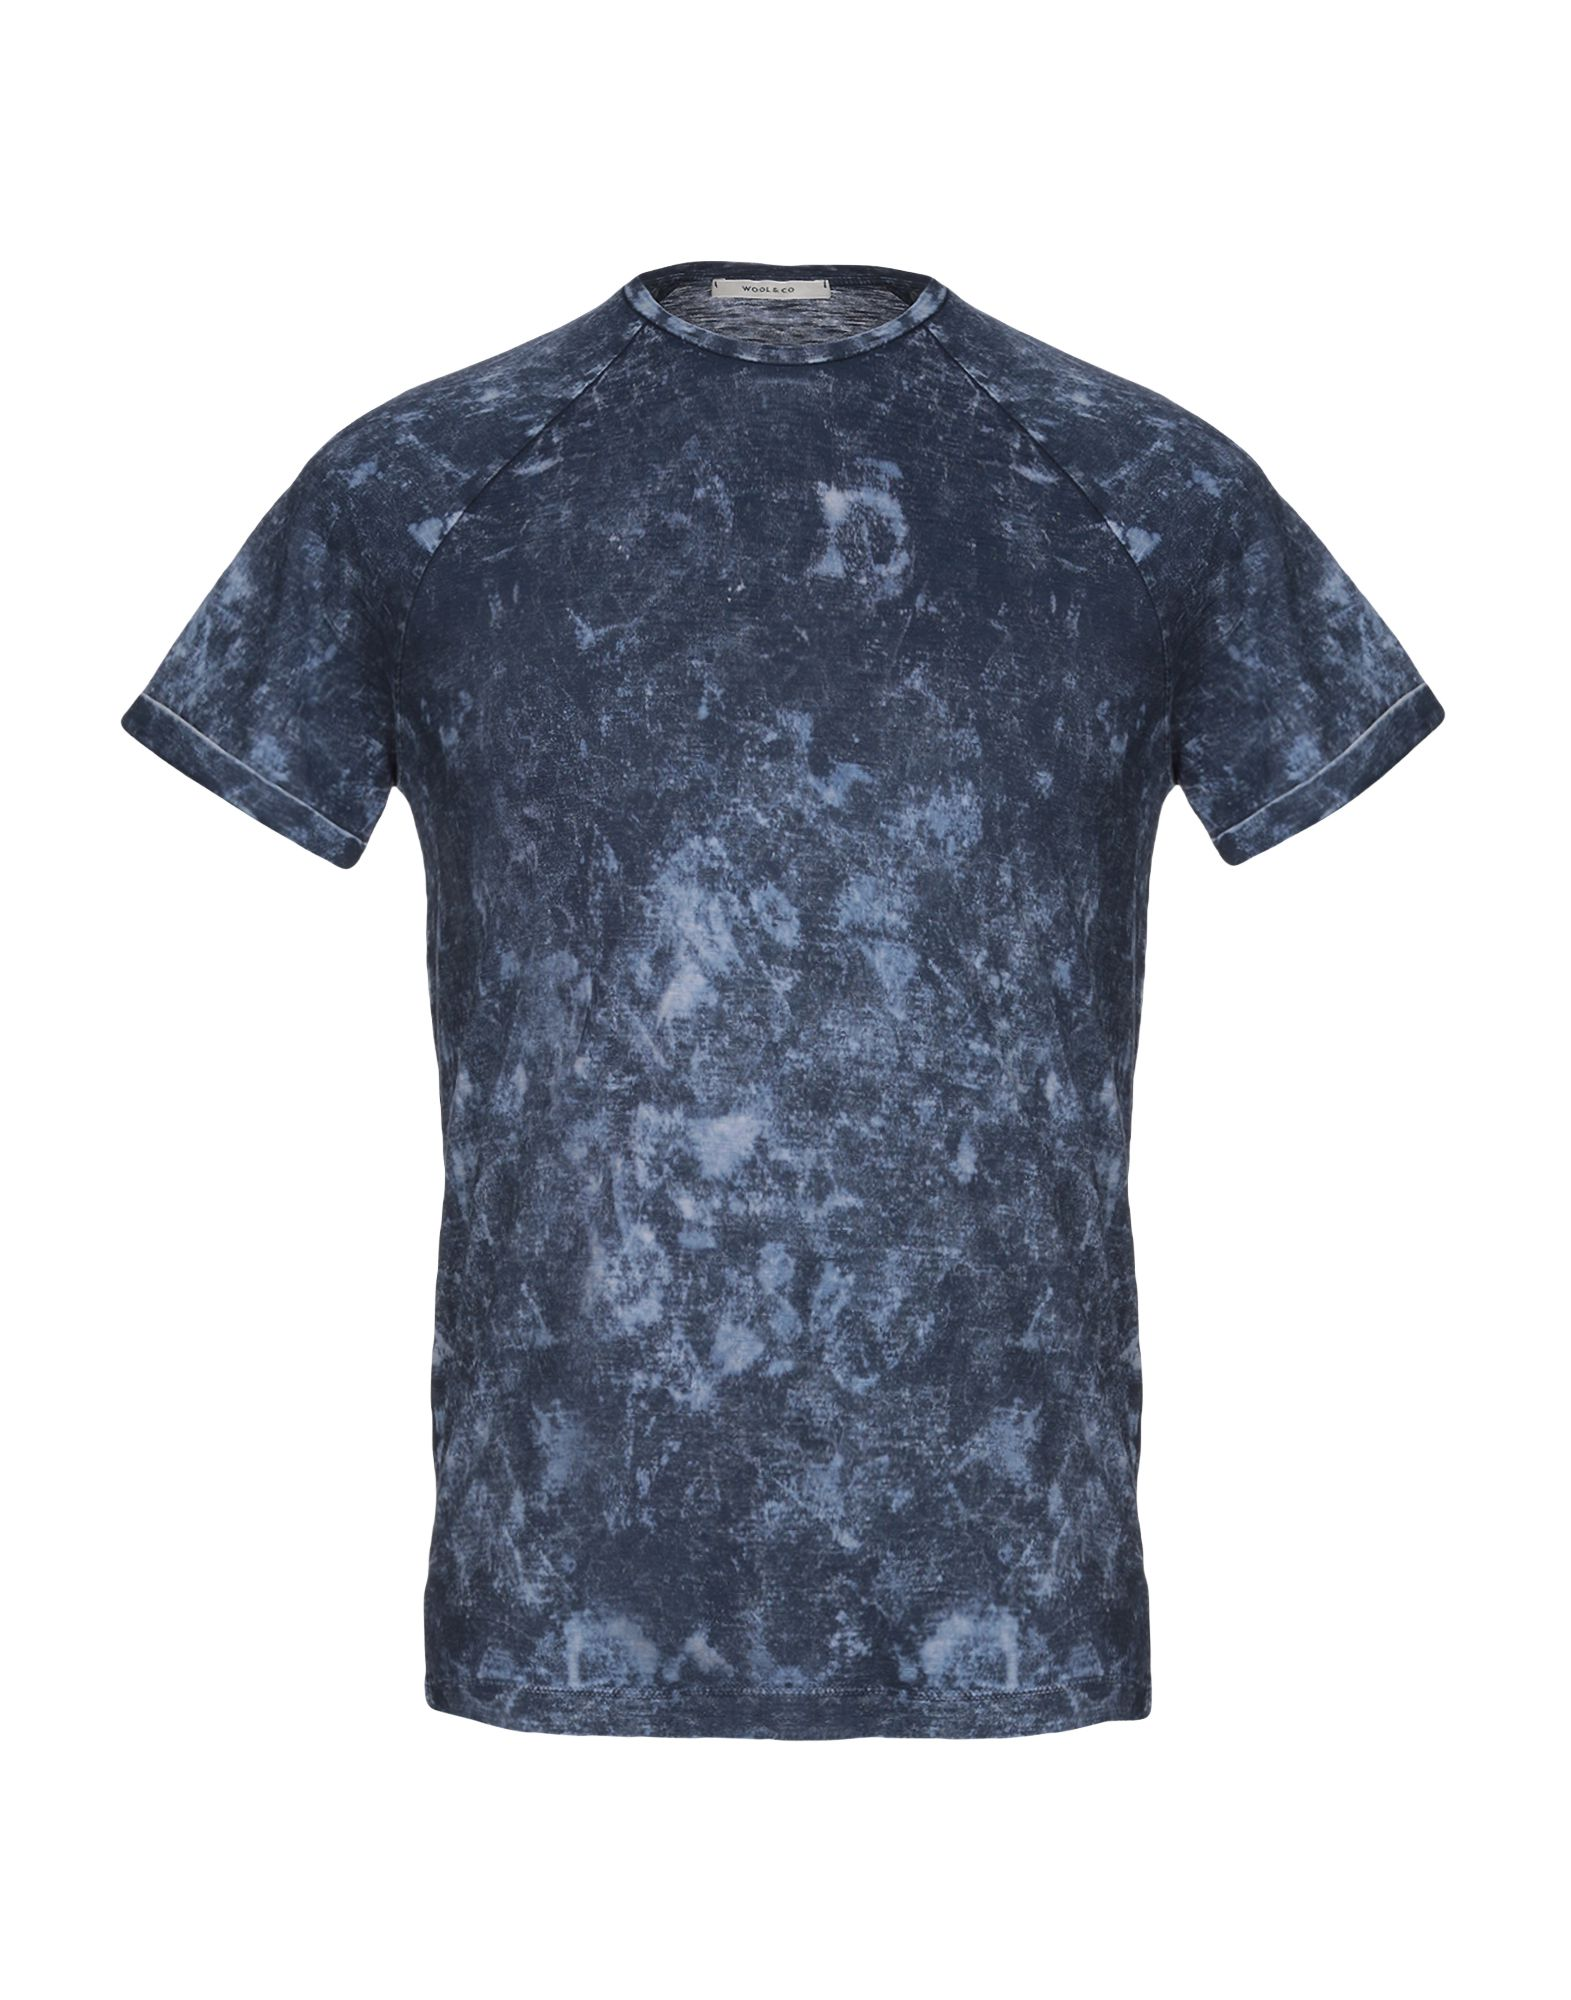 T-Shirt Wool & Co herren - 12309934UK